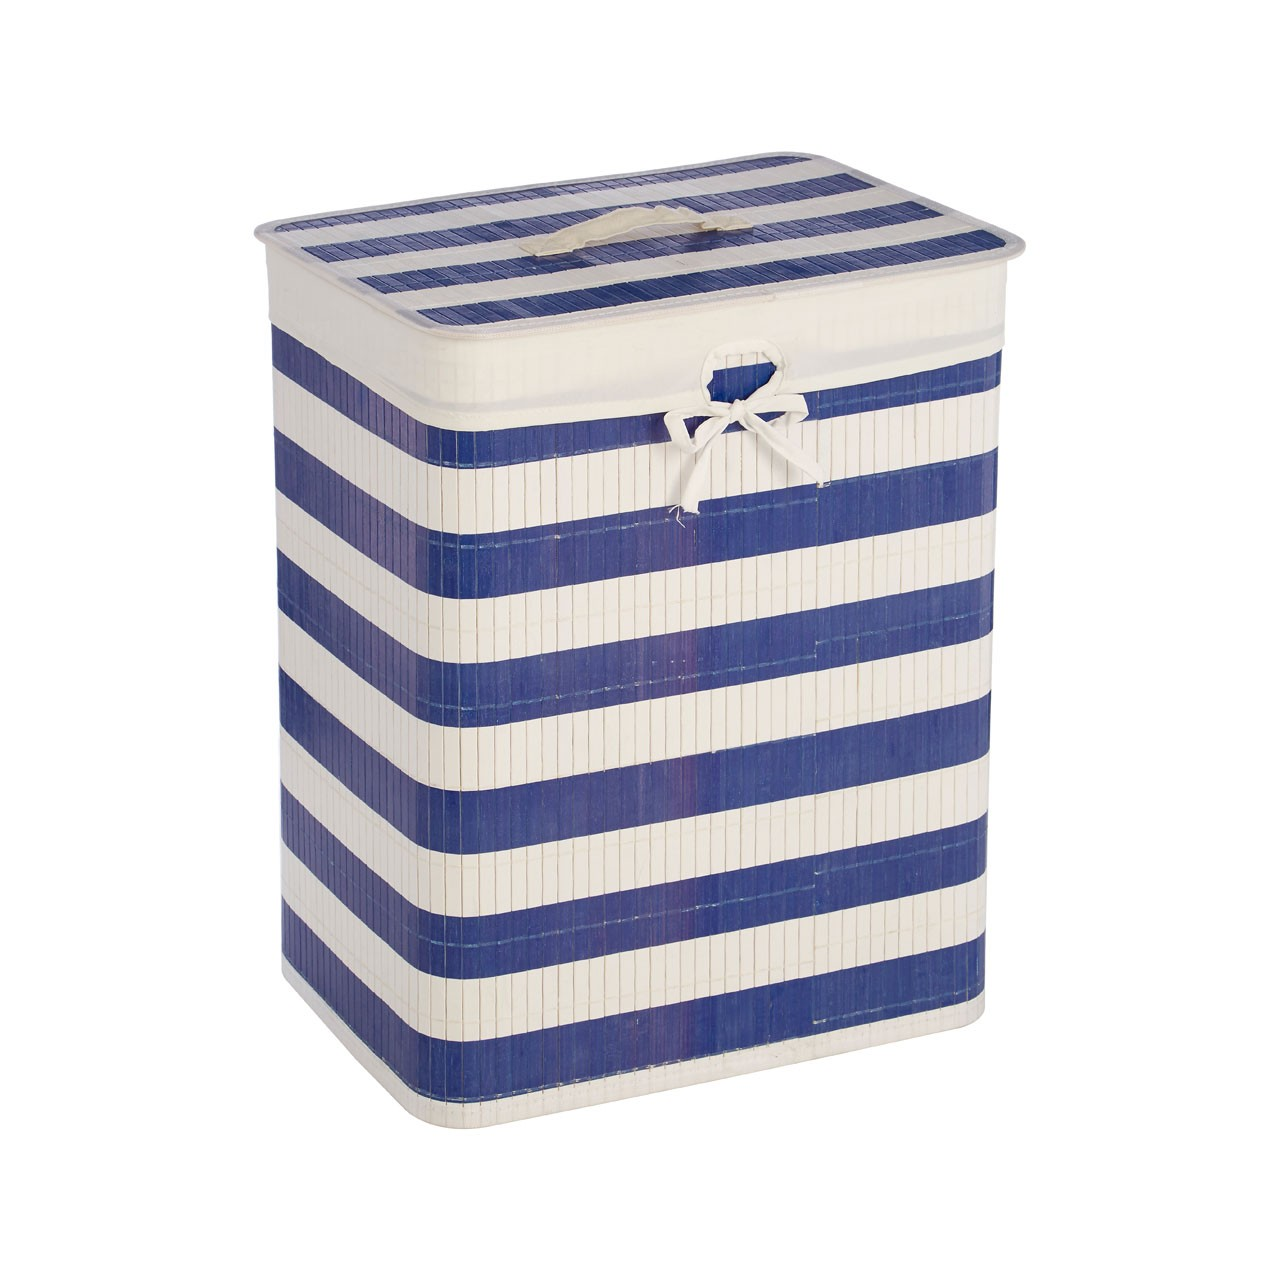 blue and white stripes on the Kankyo nautical laundry hamper